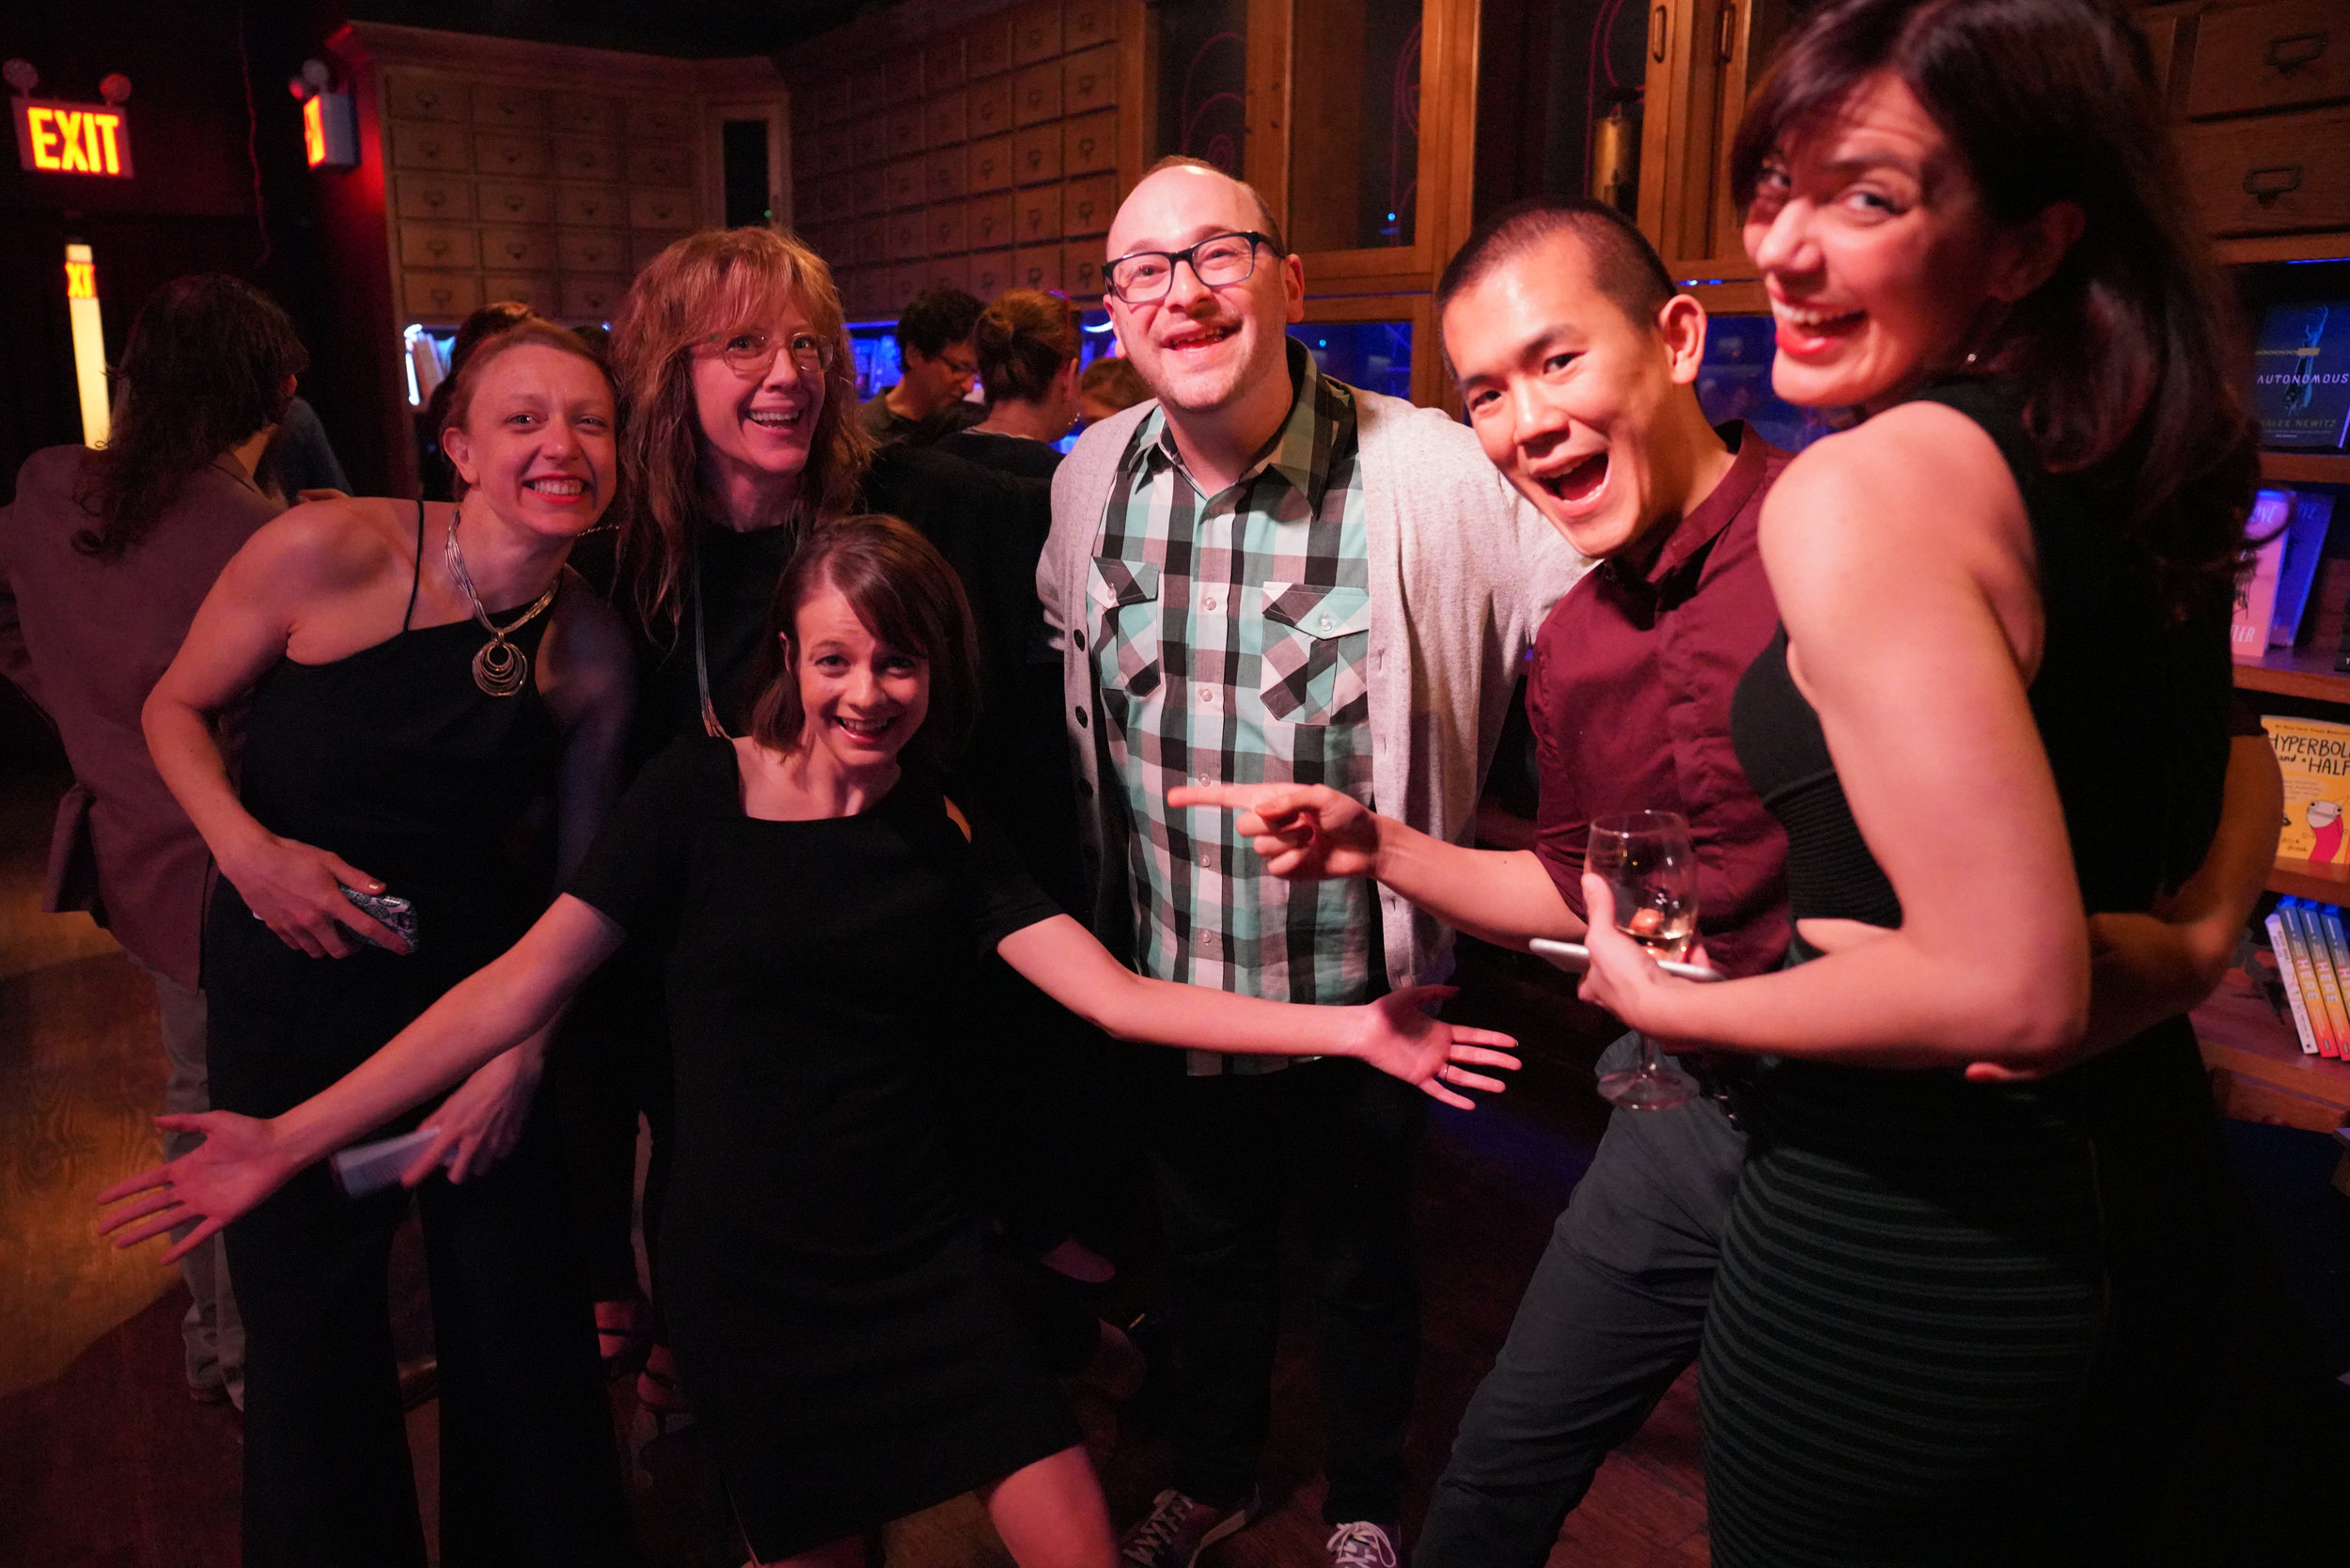 Celebrating a hilarious performance by Josh Gondelman (center): Story Collider NYC producers Paula Croxson (also a neuroscientist at Mt. Sinai) and Tracy Rowland (also an Emmy-winning TV producer), SC artistic director Erin Barker, journalist Ed Yong, and SC executive director Liz Neeley.